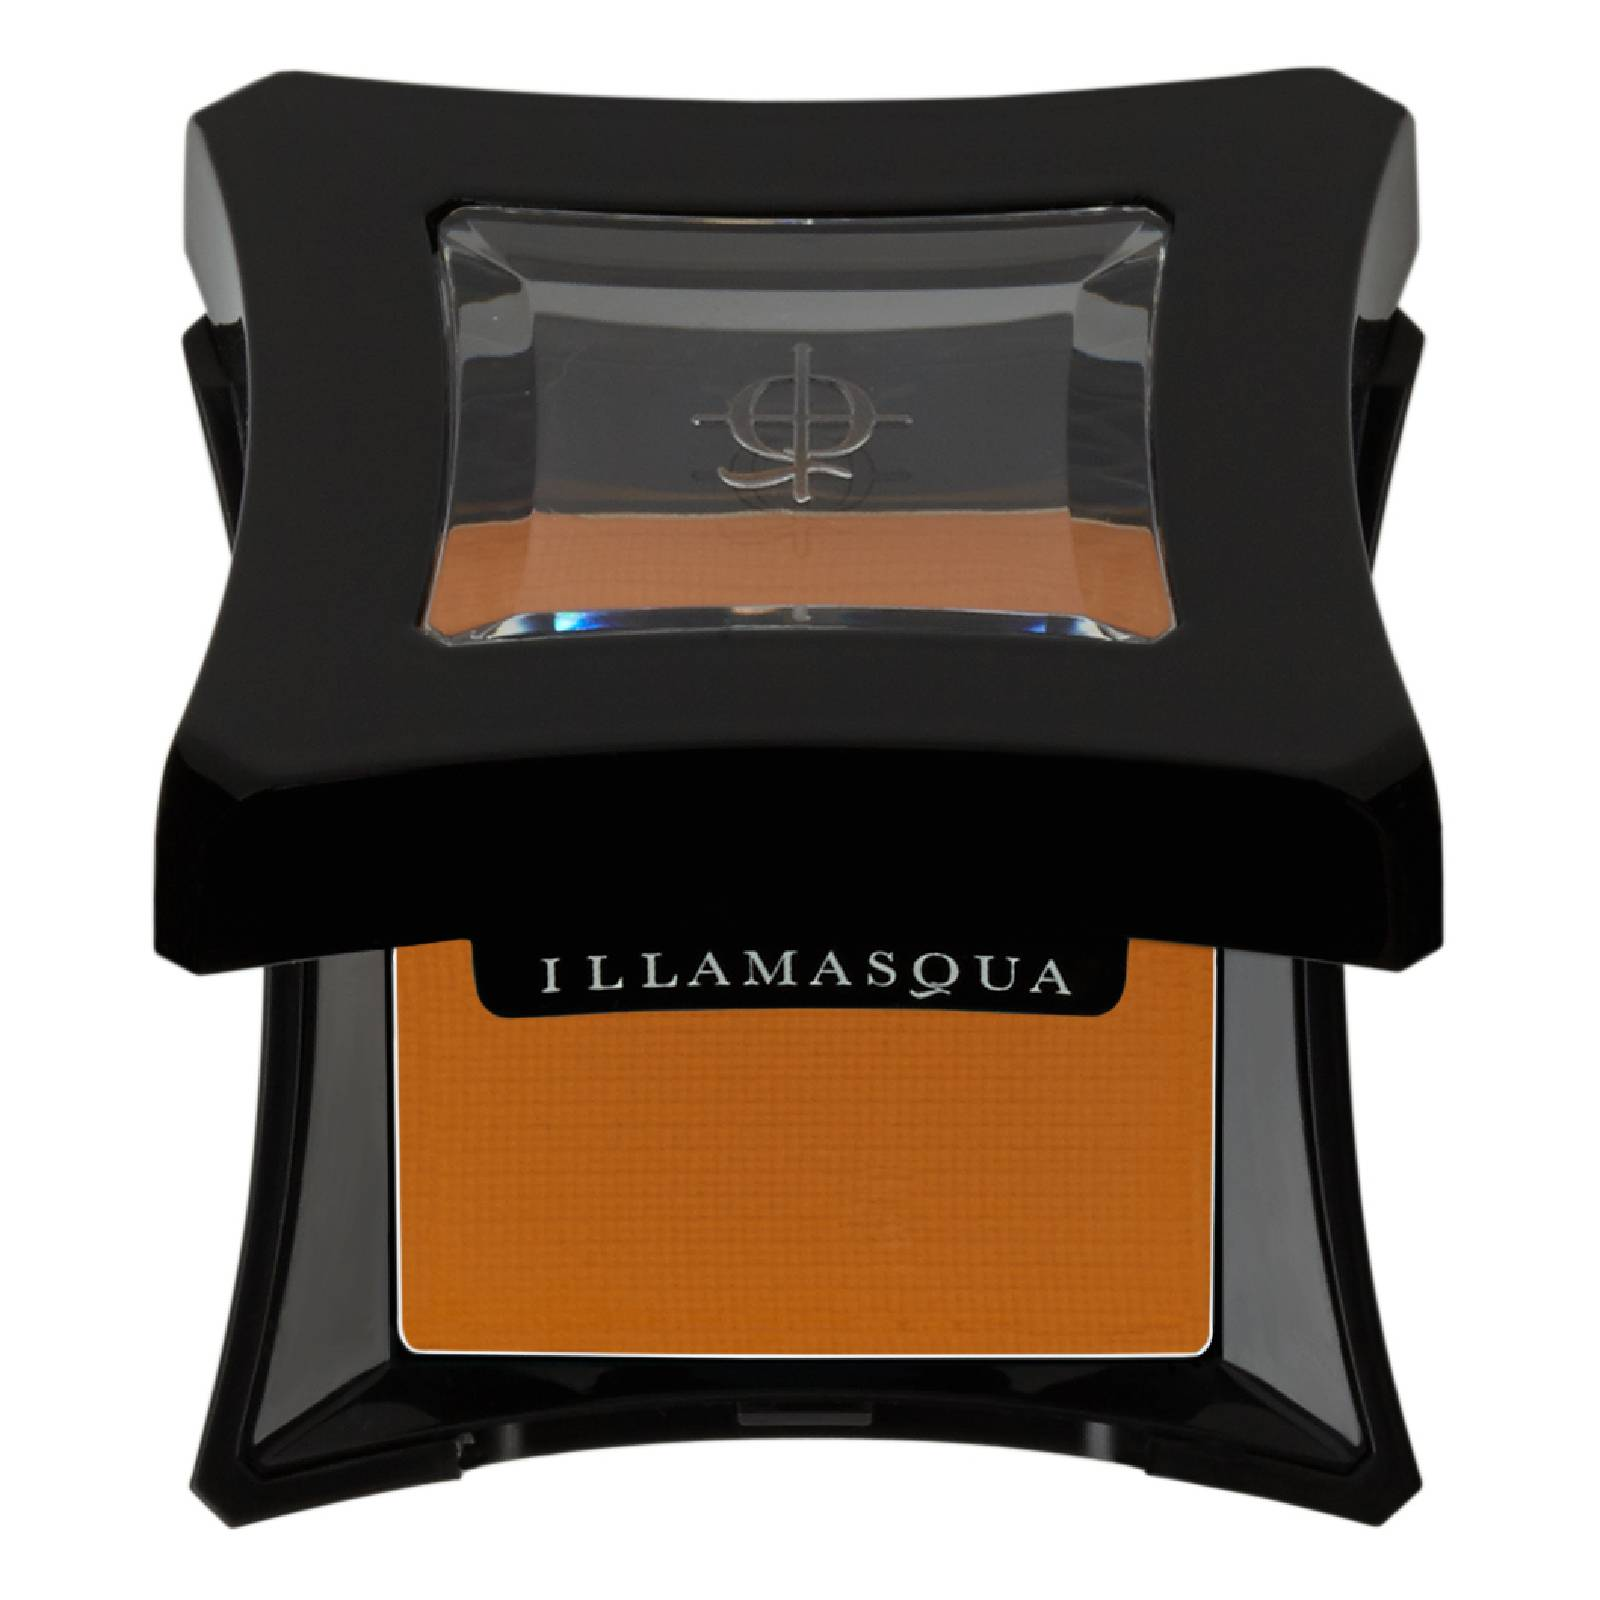 Illamasqua Powder Eye Shadow 2g (Various Shades) - Vapour